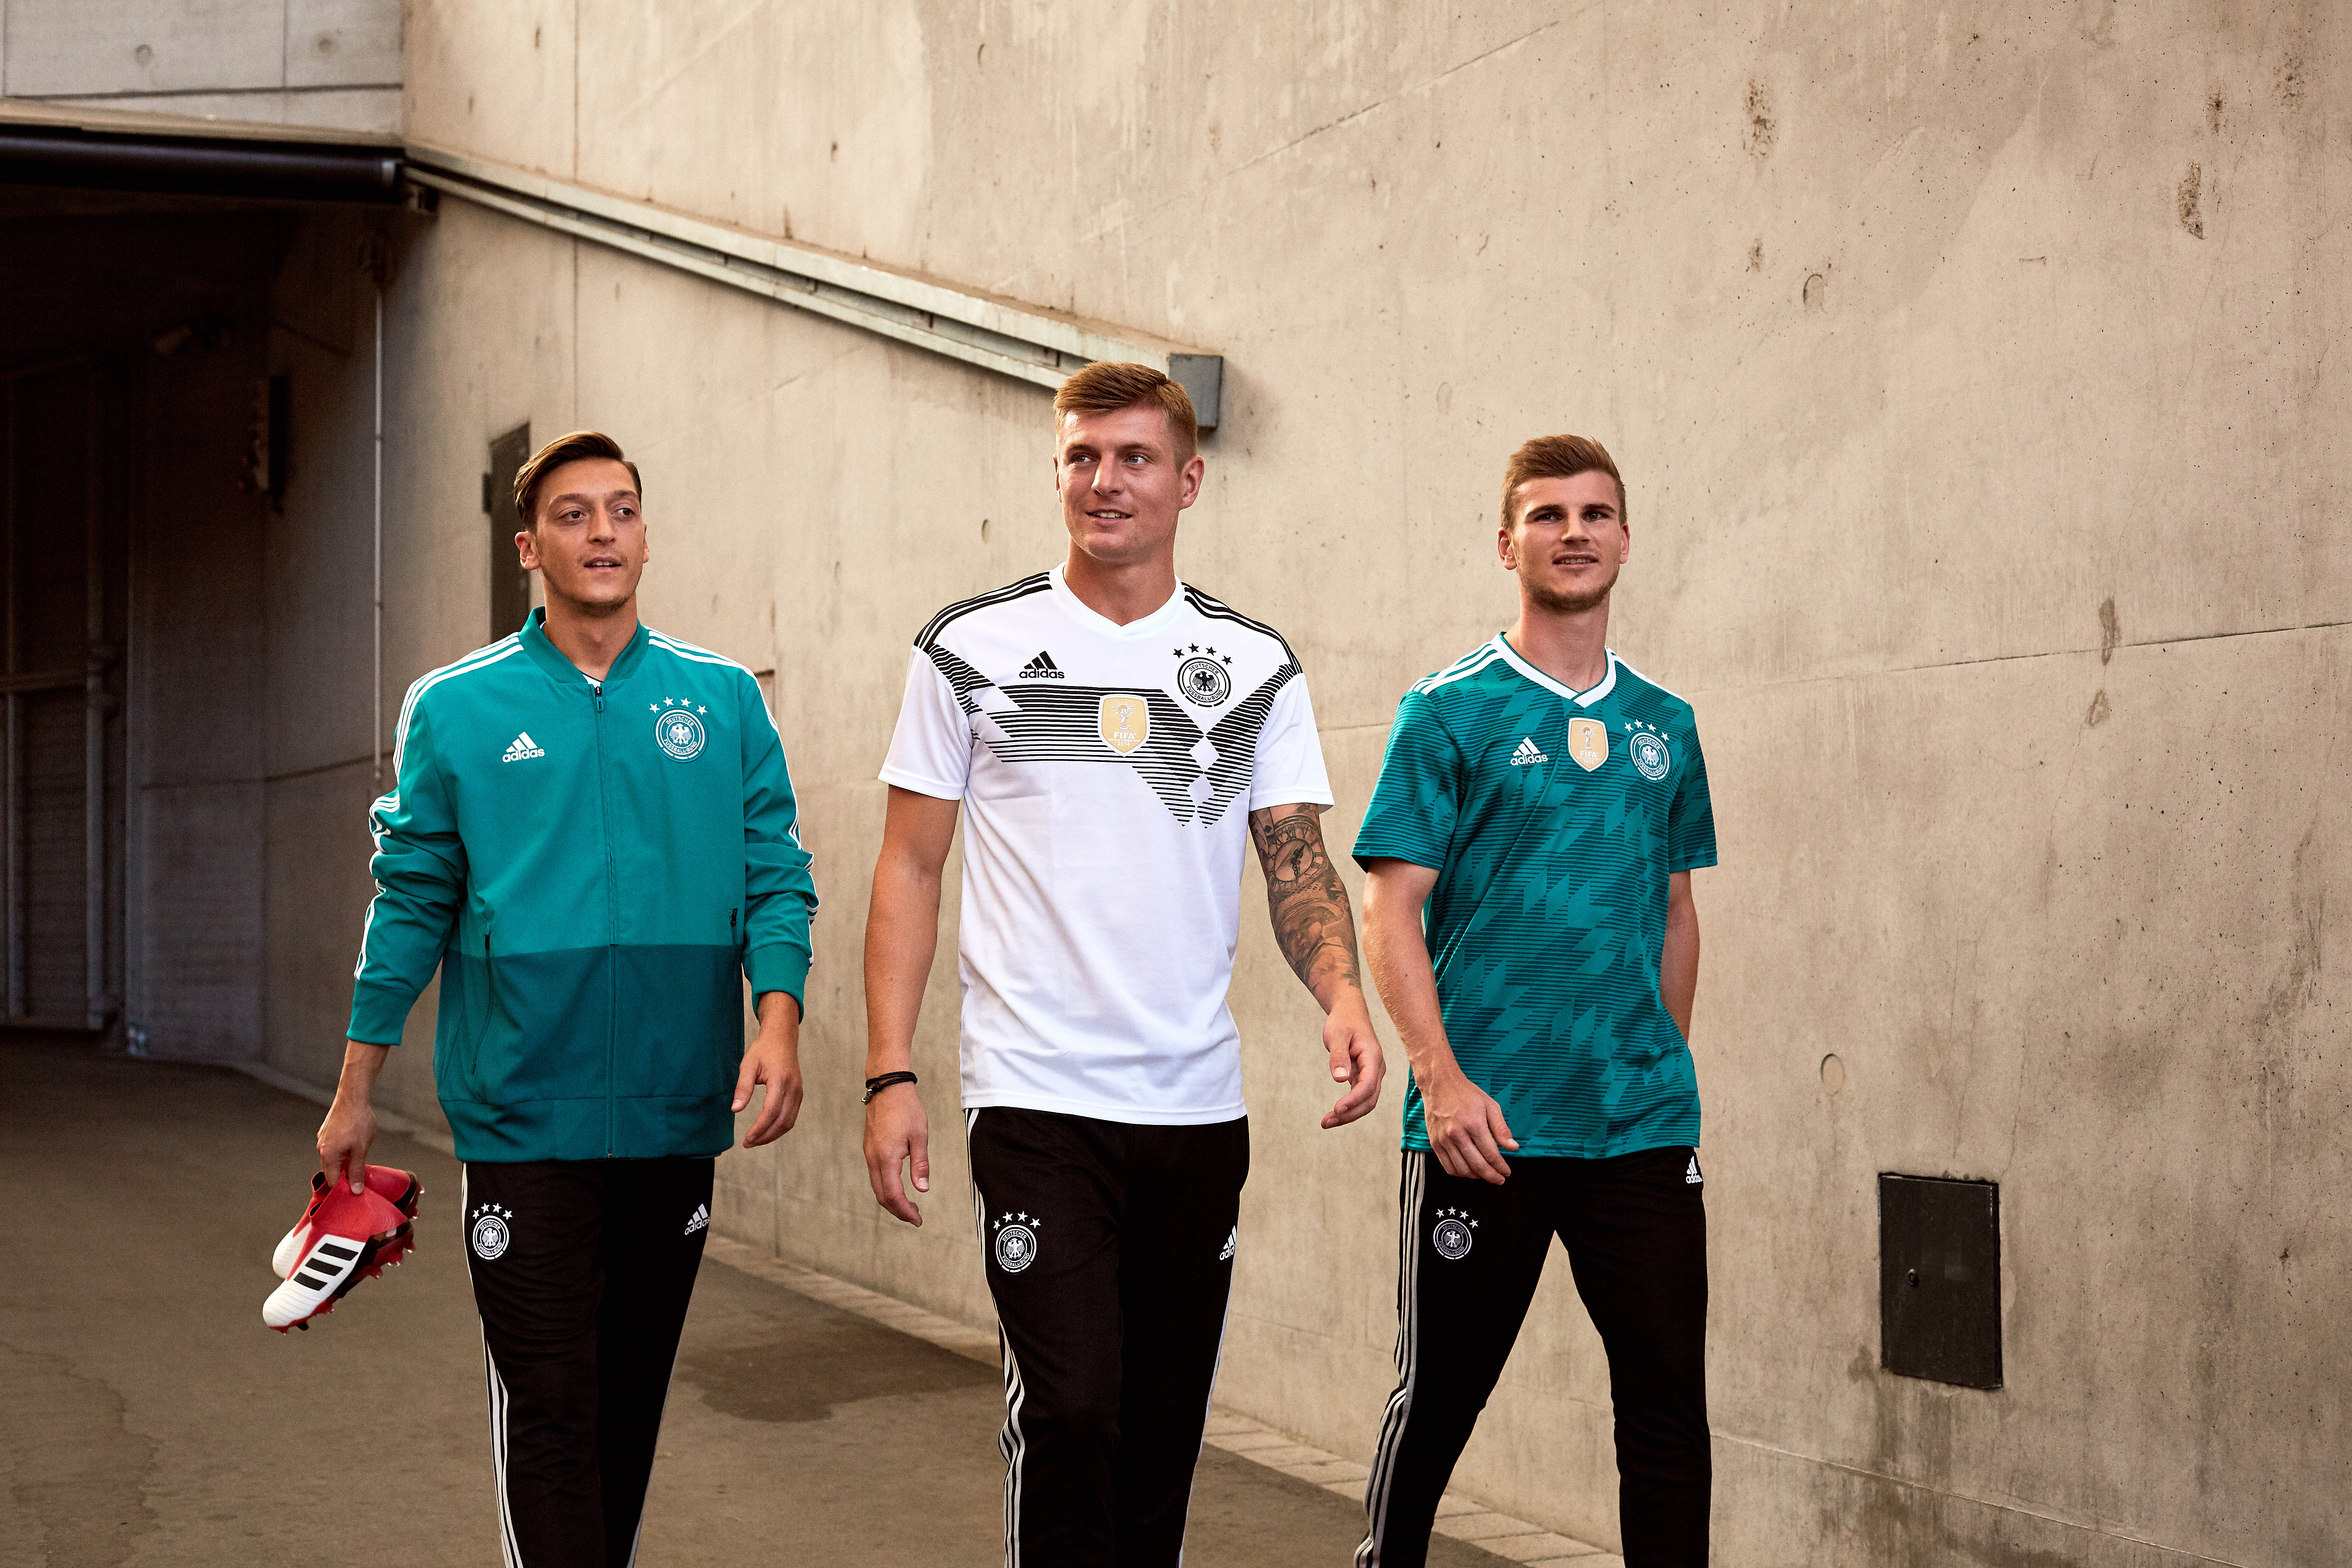 """12eba3766 The collar has the words """"Die Mannschaft,"""" which means """"The Team"""" on the  neckline. A gold World Cup winner badge is on the front of the jersey."""